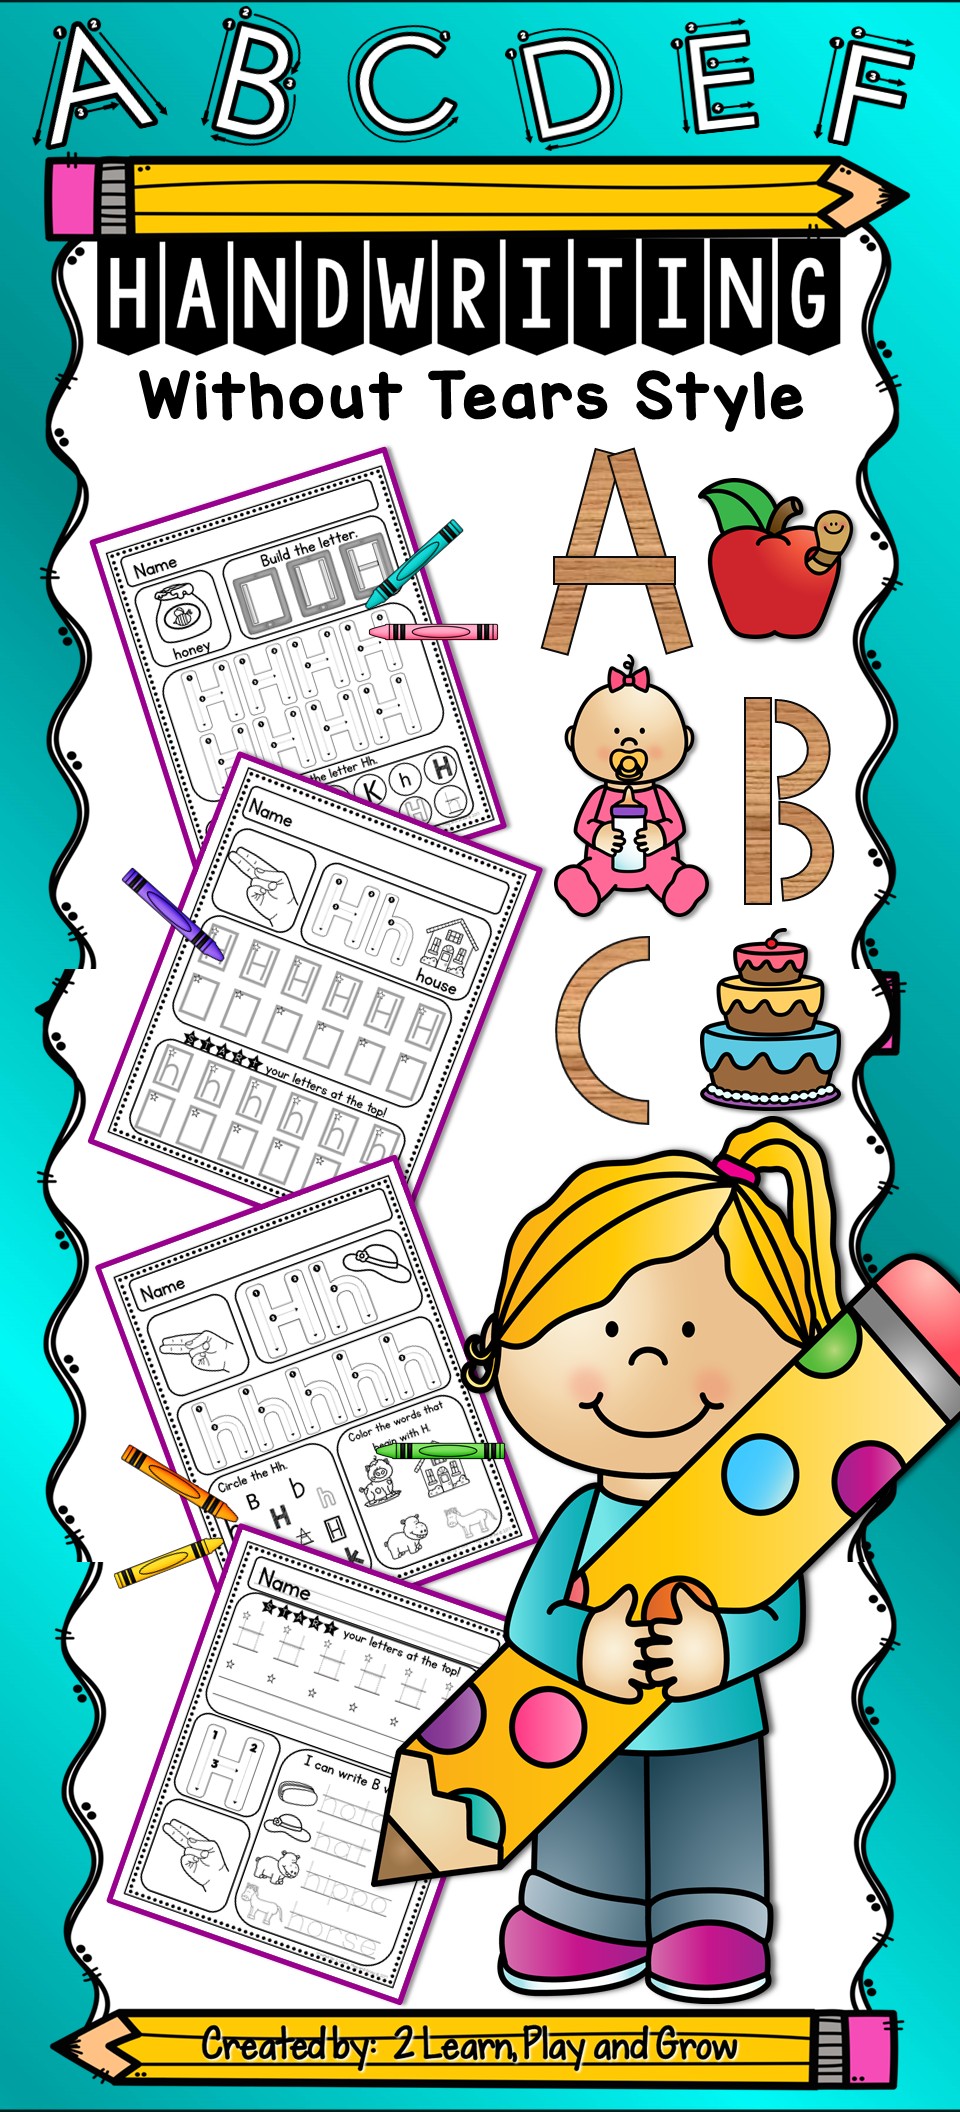 handwriting without tears style worksheets - differentiated pre-k